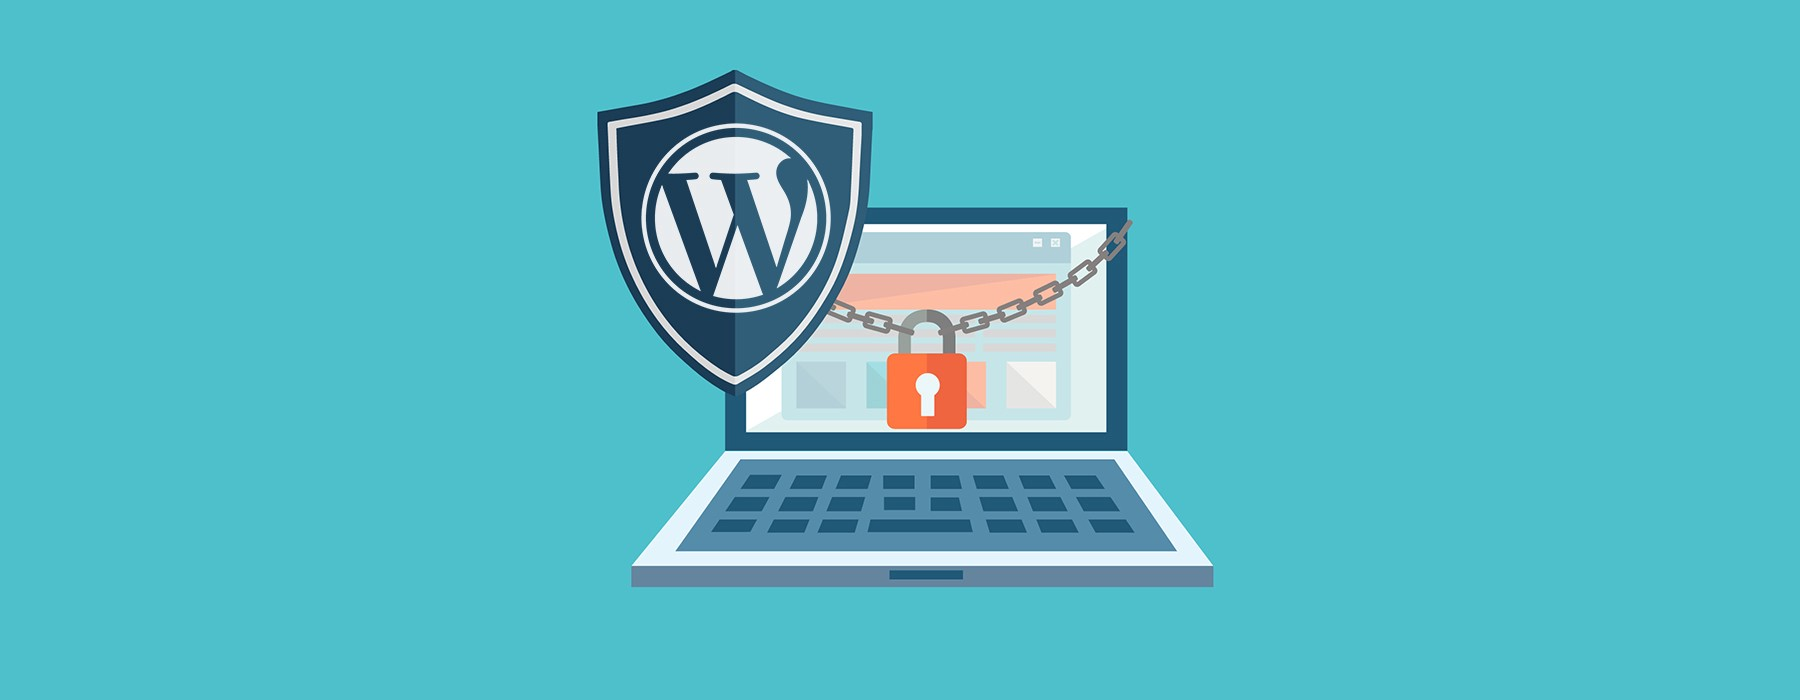 How to remove WordPress redirects by hackers — a look at the